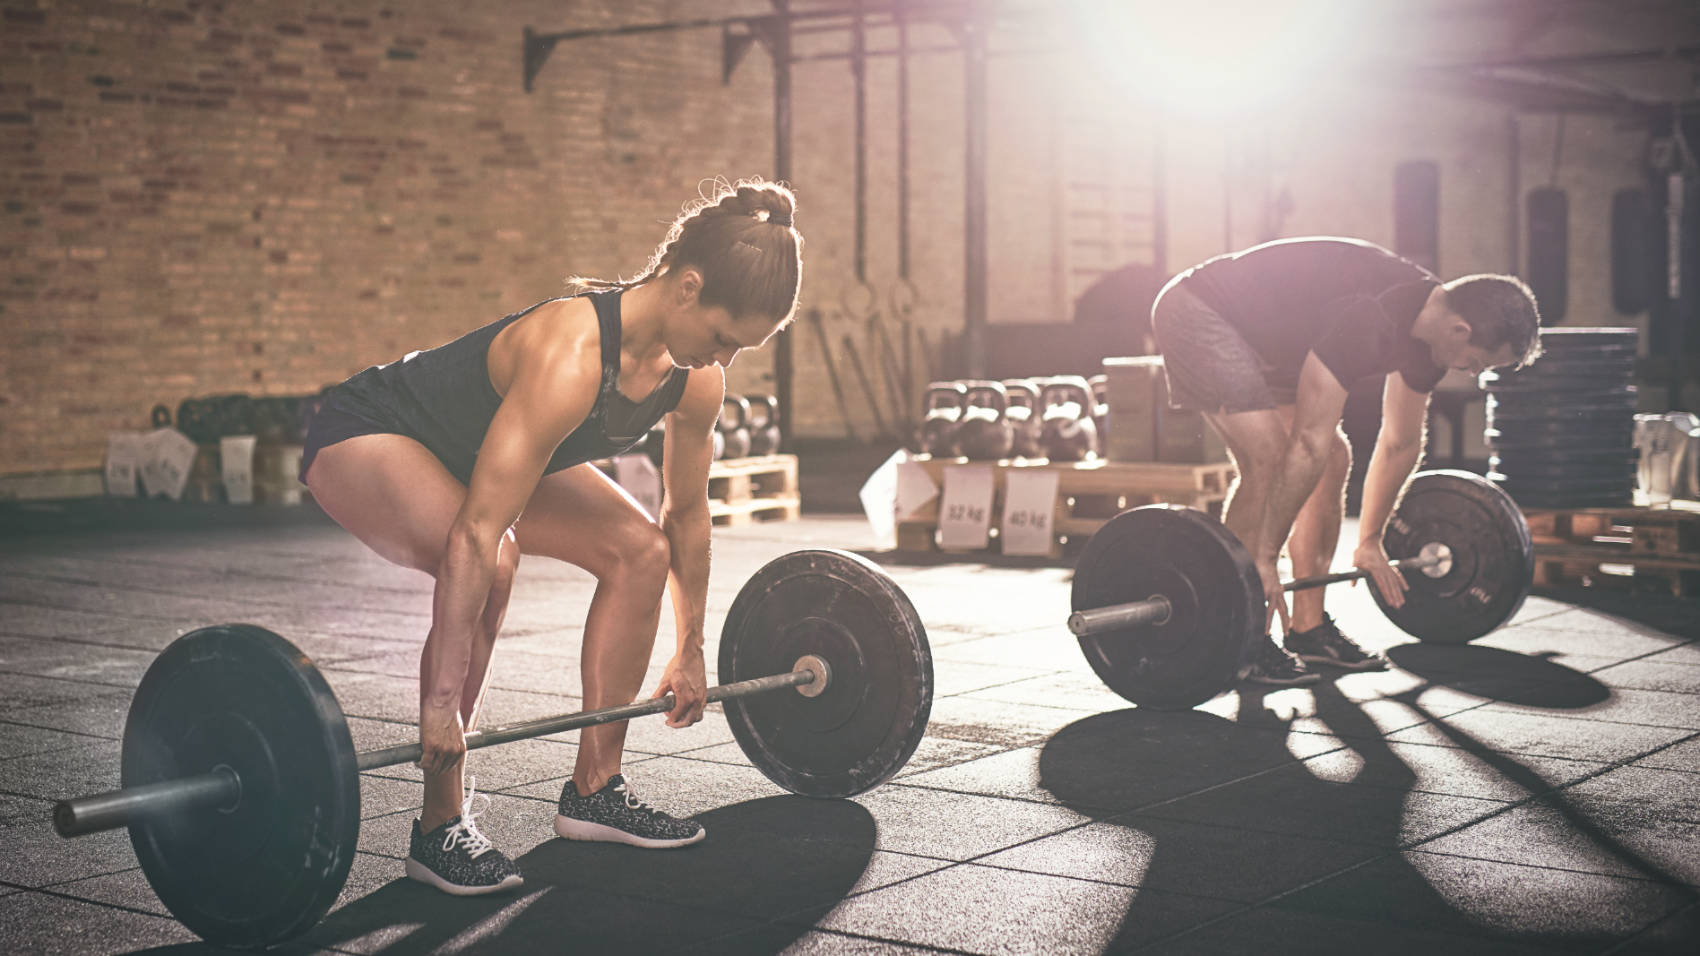 Deadlifts: Don't Be Afraid. We've Got Your Back!